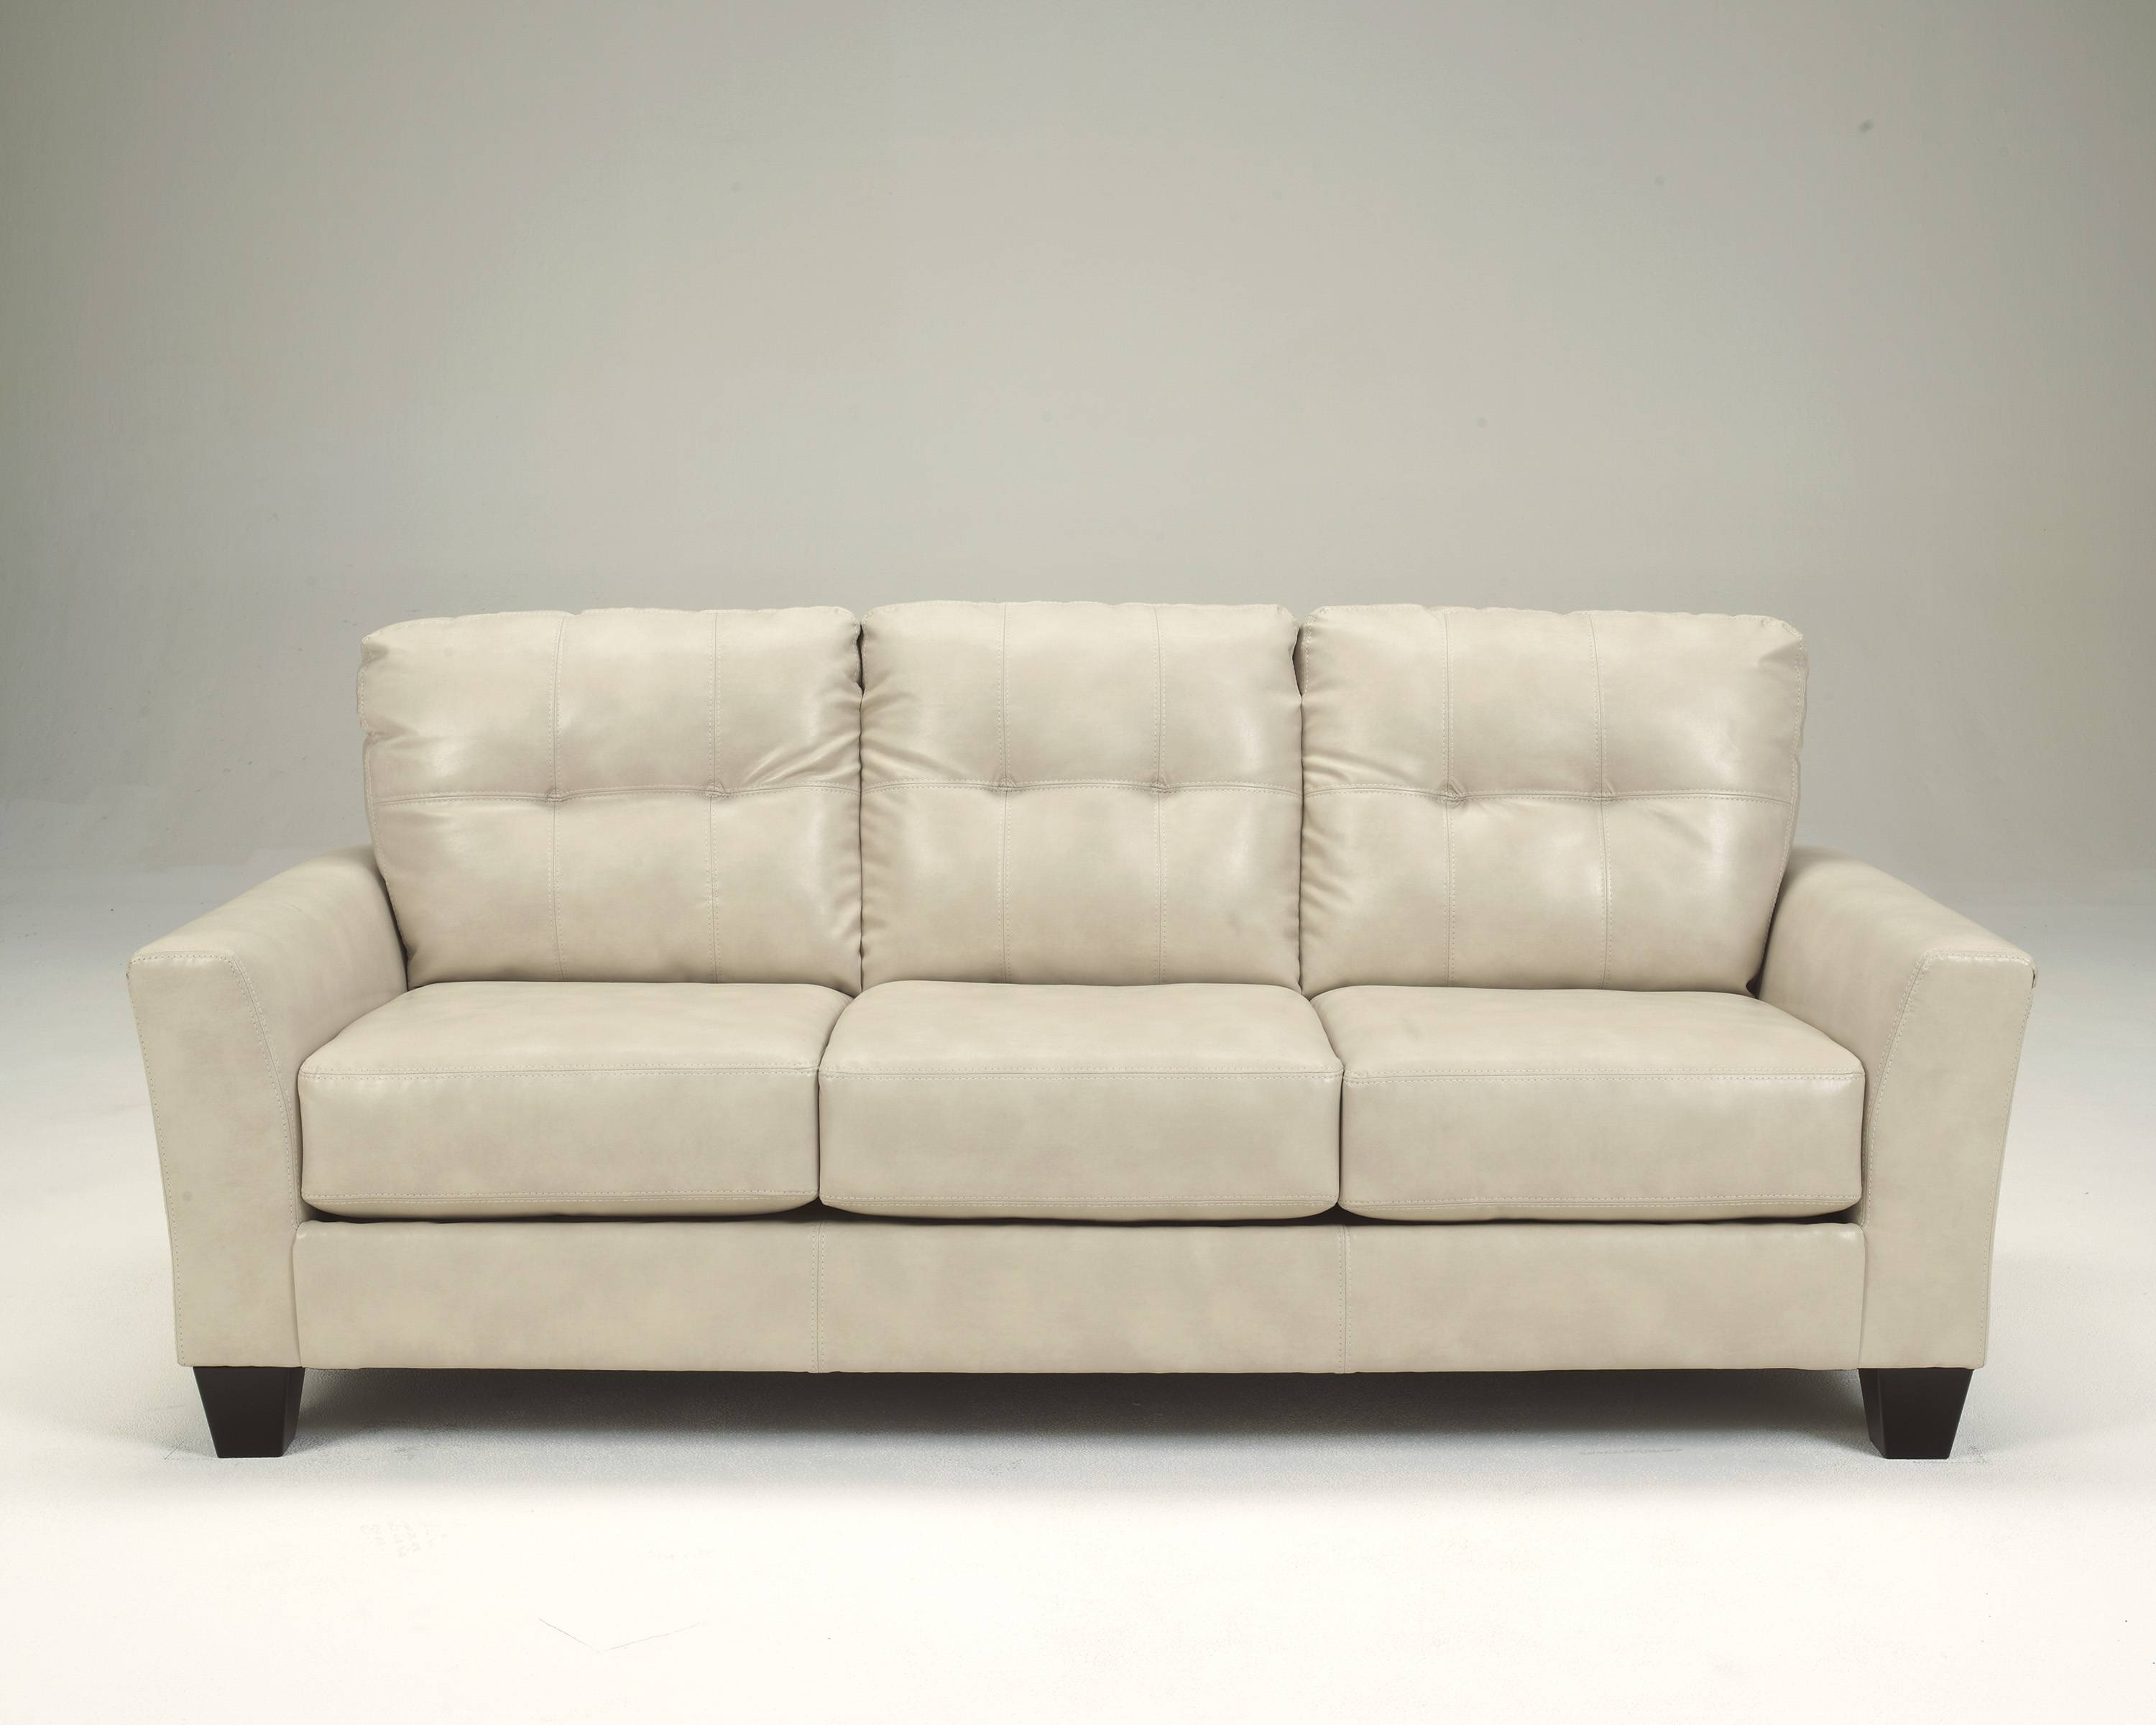 Benchcraft Leather Sofa Nastas Durablend Bark Sofa By Benchcraft Decorating The New TheSofa